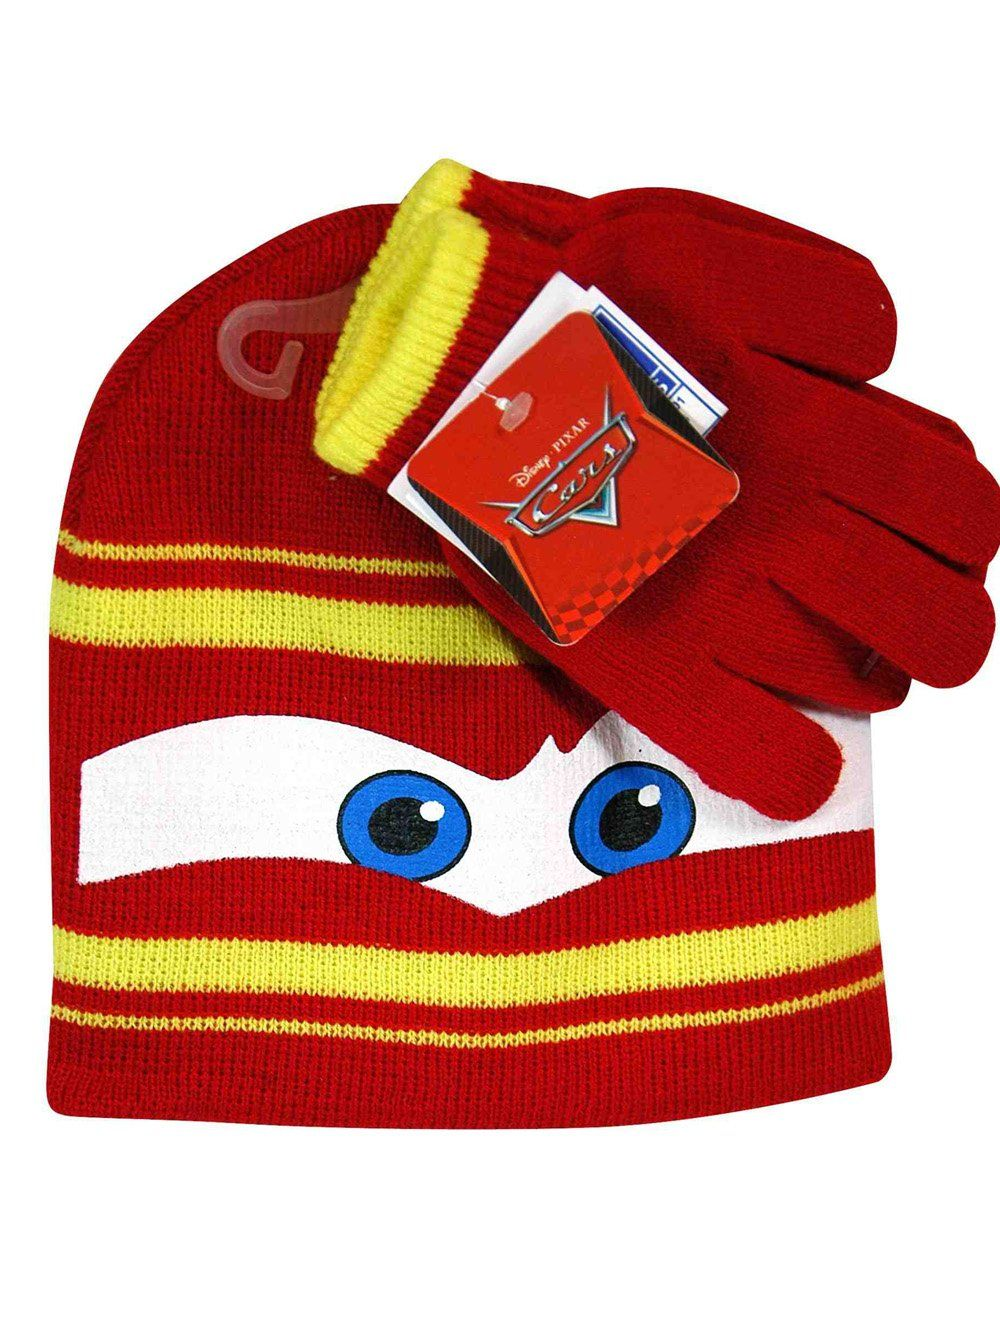 c84d9ee3629 Disney Cars Lightning Mcqueen Winter Beanie Hat   Gloves Set. Material   100% Acrylic